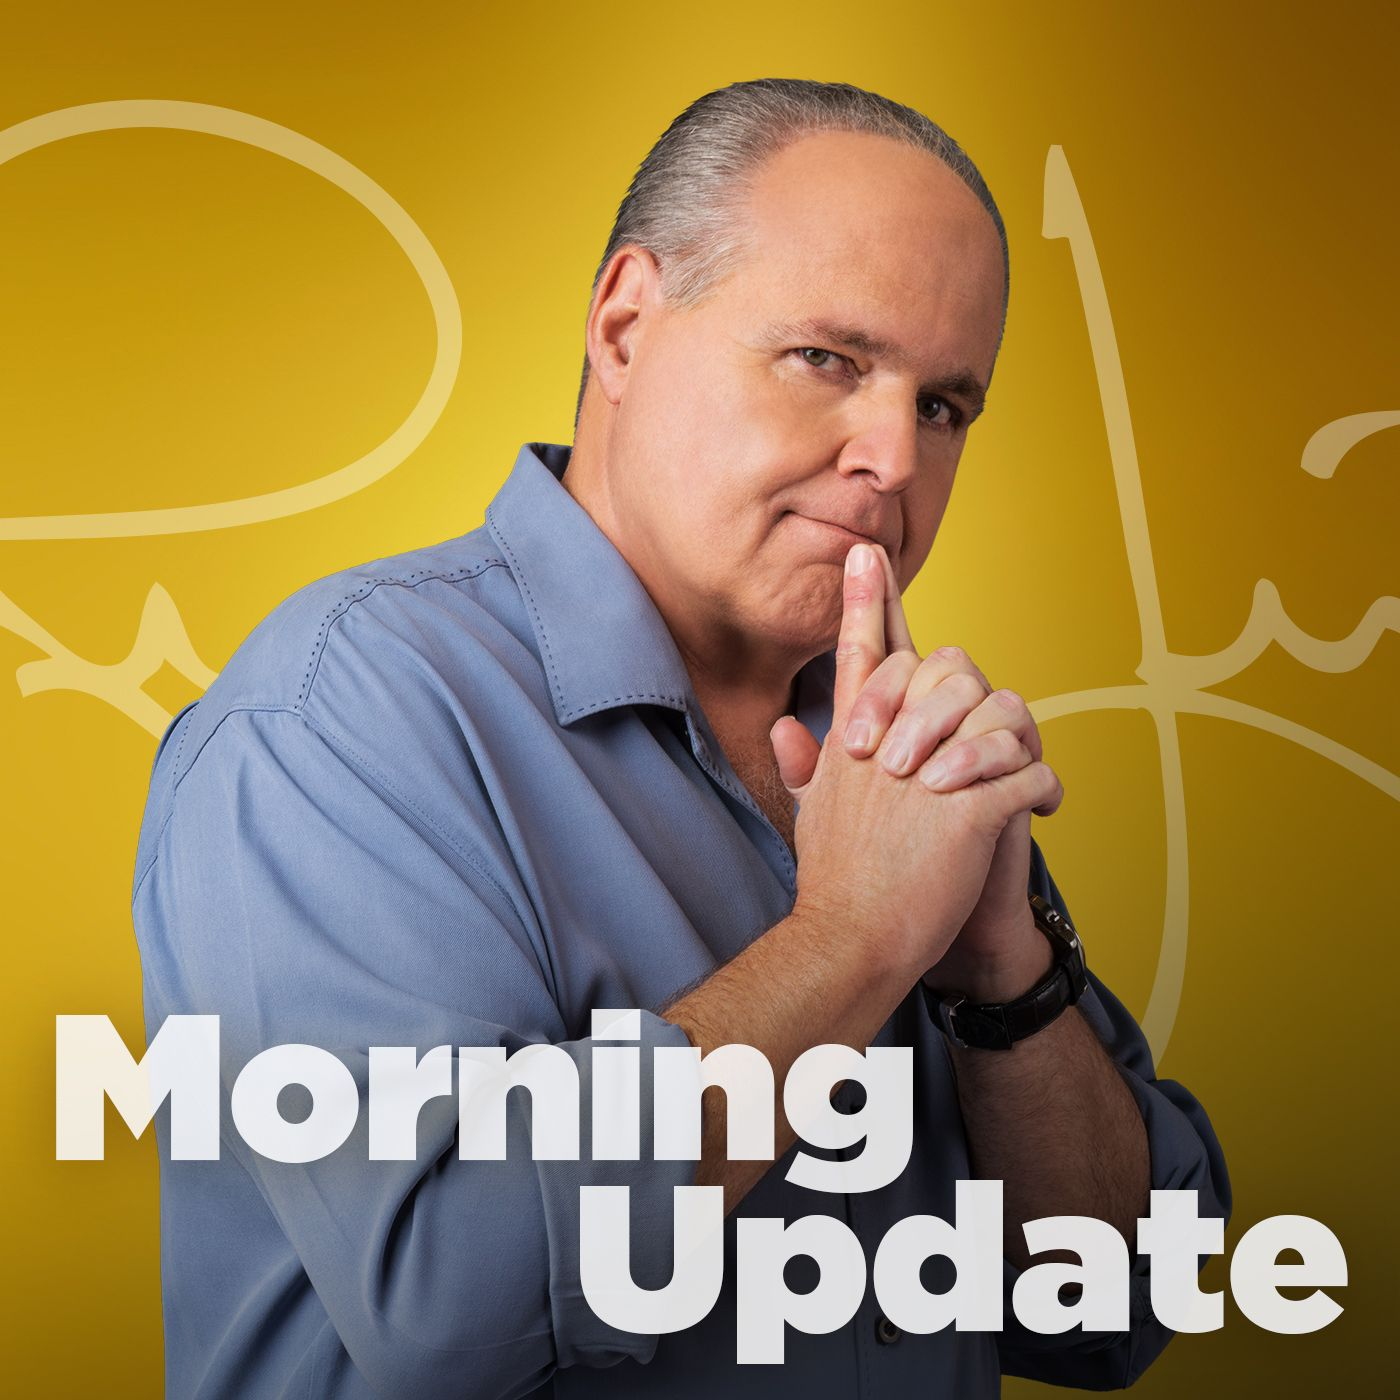 Rush Limbaugh Jun 22, 2020